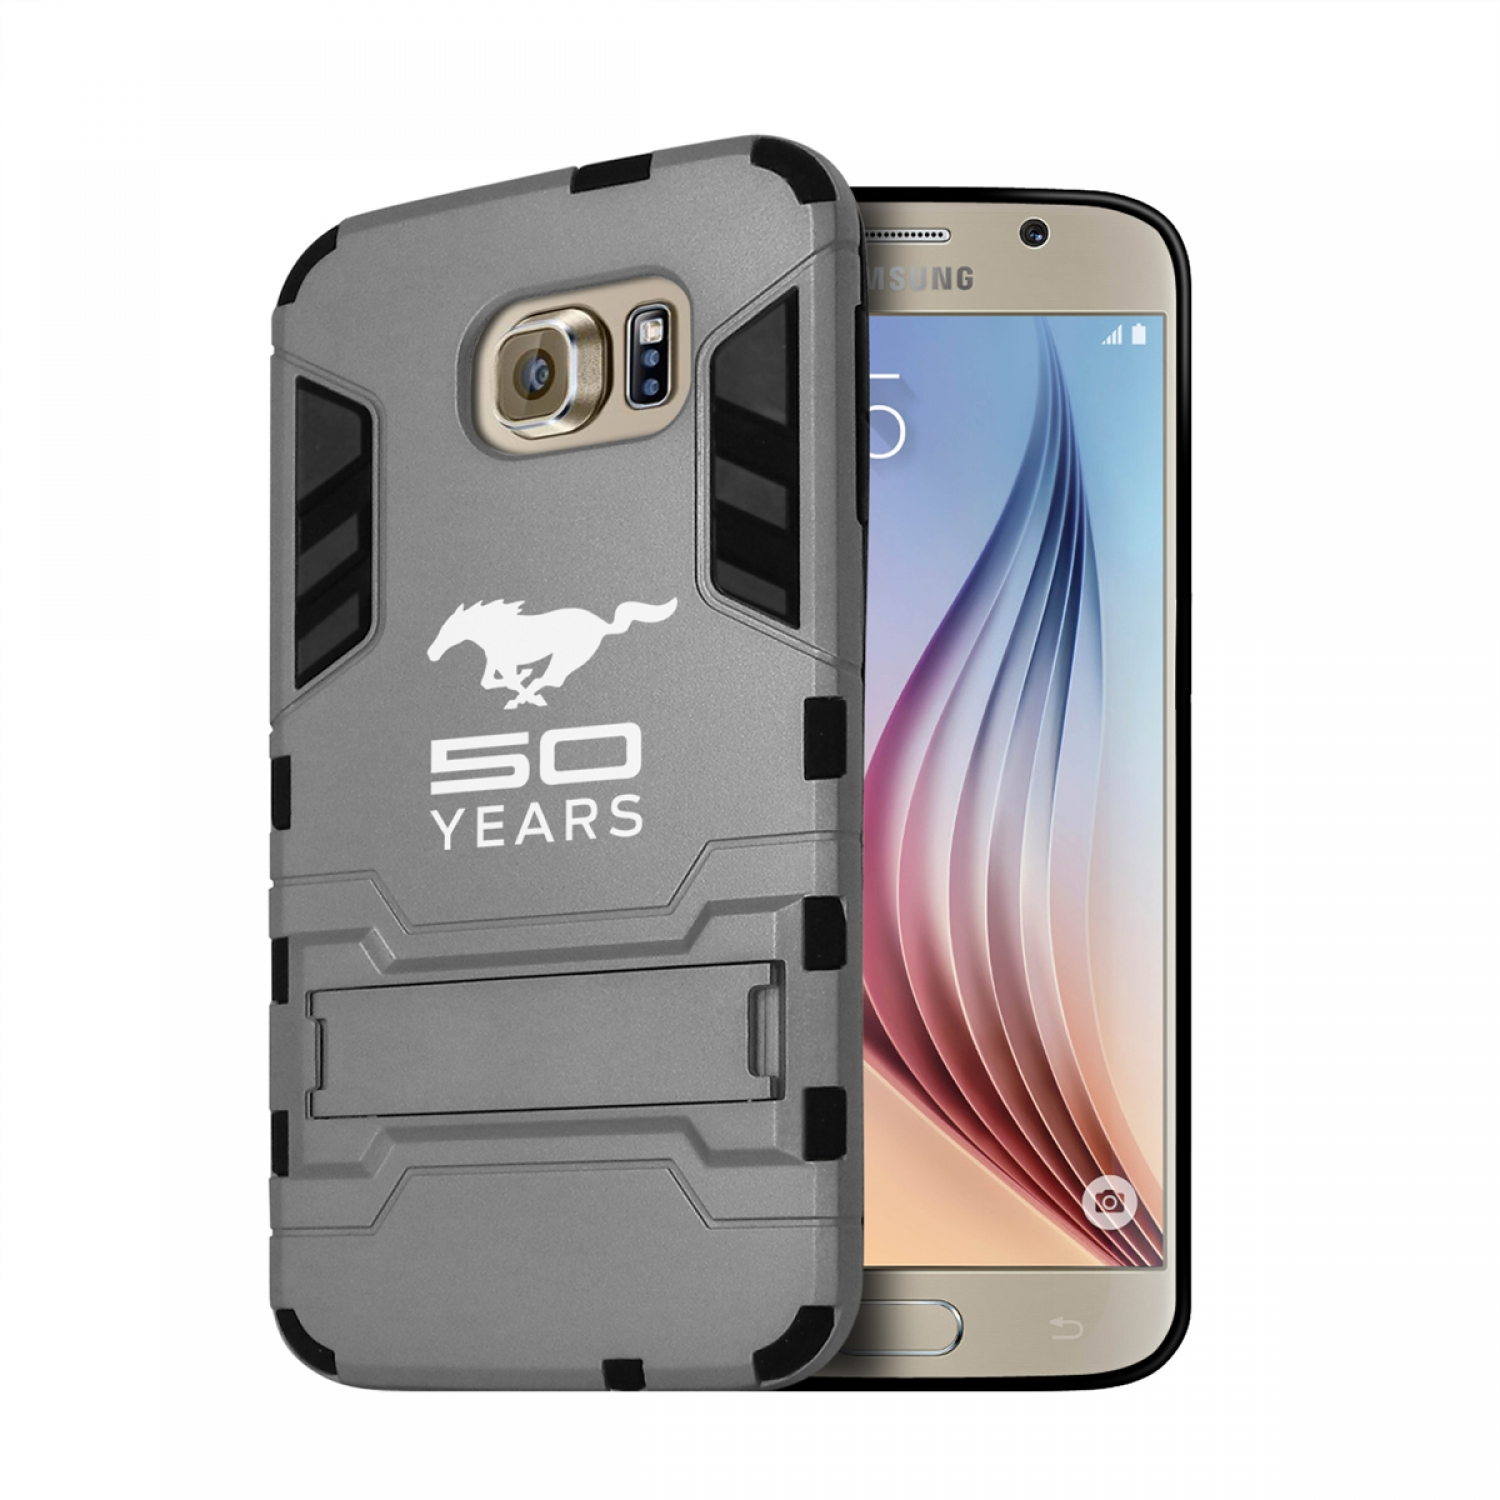 Ford Mustang 50 Years Samsung Galaxy S6 Shockproof TPU ABS Hybrid Gray Phone Case